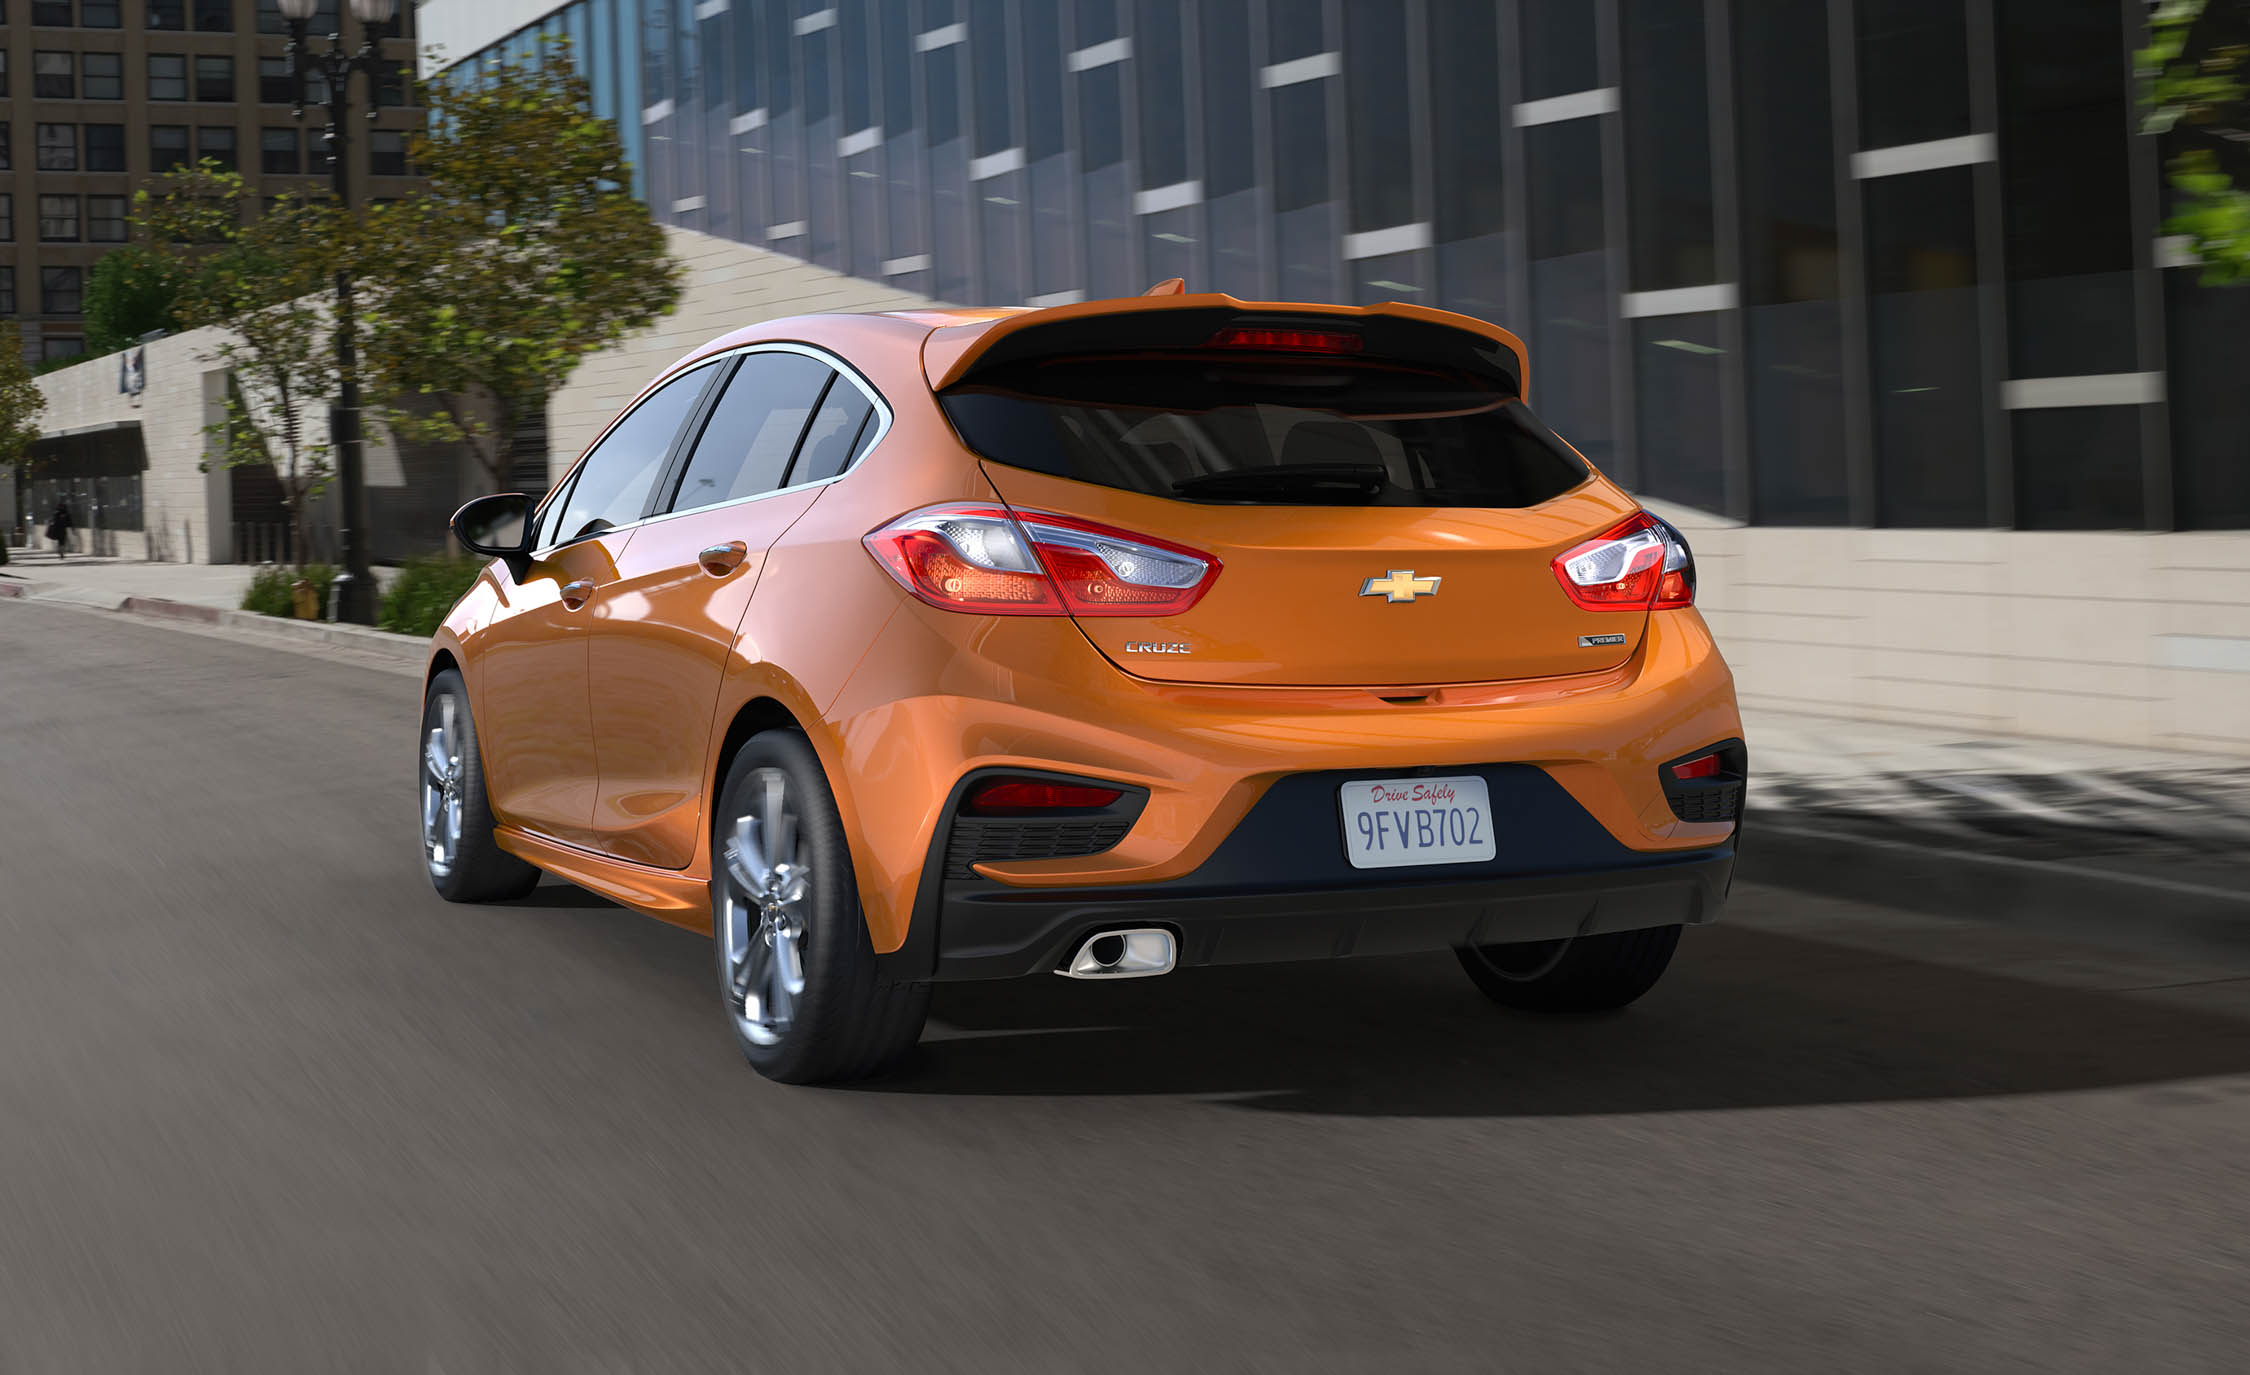 2017 Chevrolet Cruze Hatchback (View 5 of 9)